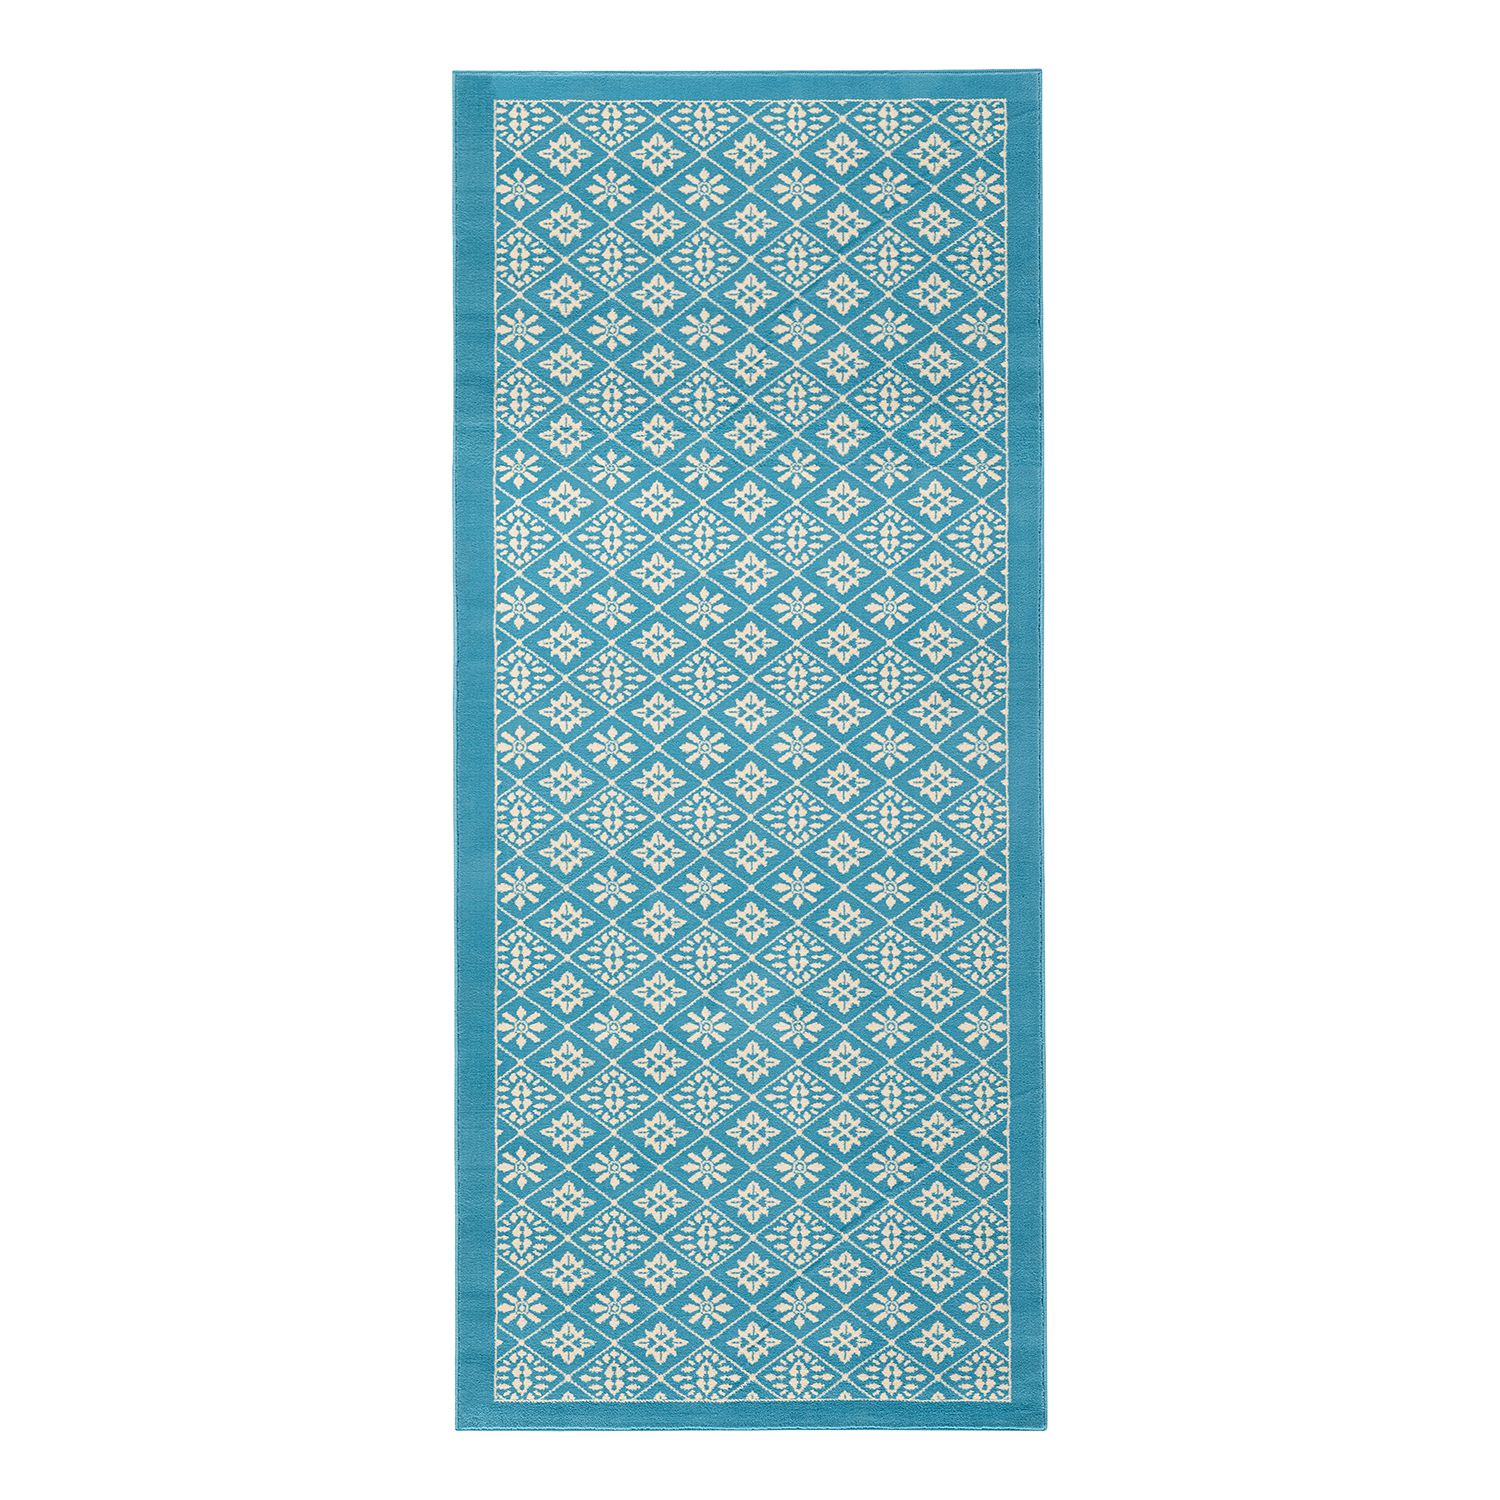 tapis tile fibres synth tiques bleu clair blanc 80 x 200 cm top square par top square. Black Bedroom Furniture Sets. Home Design Ideas